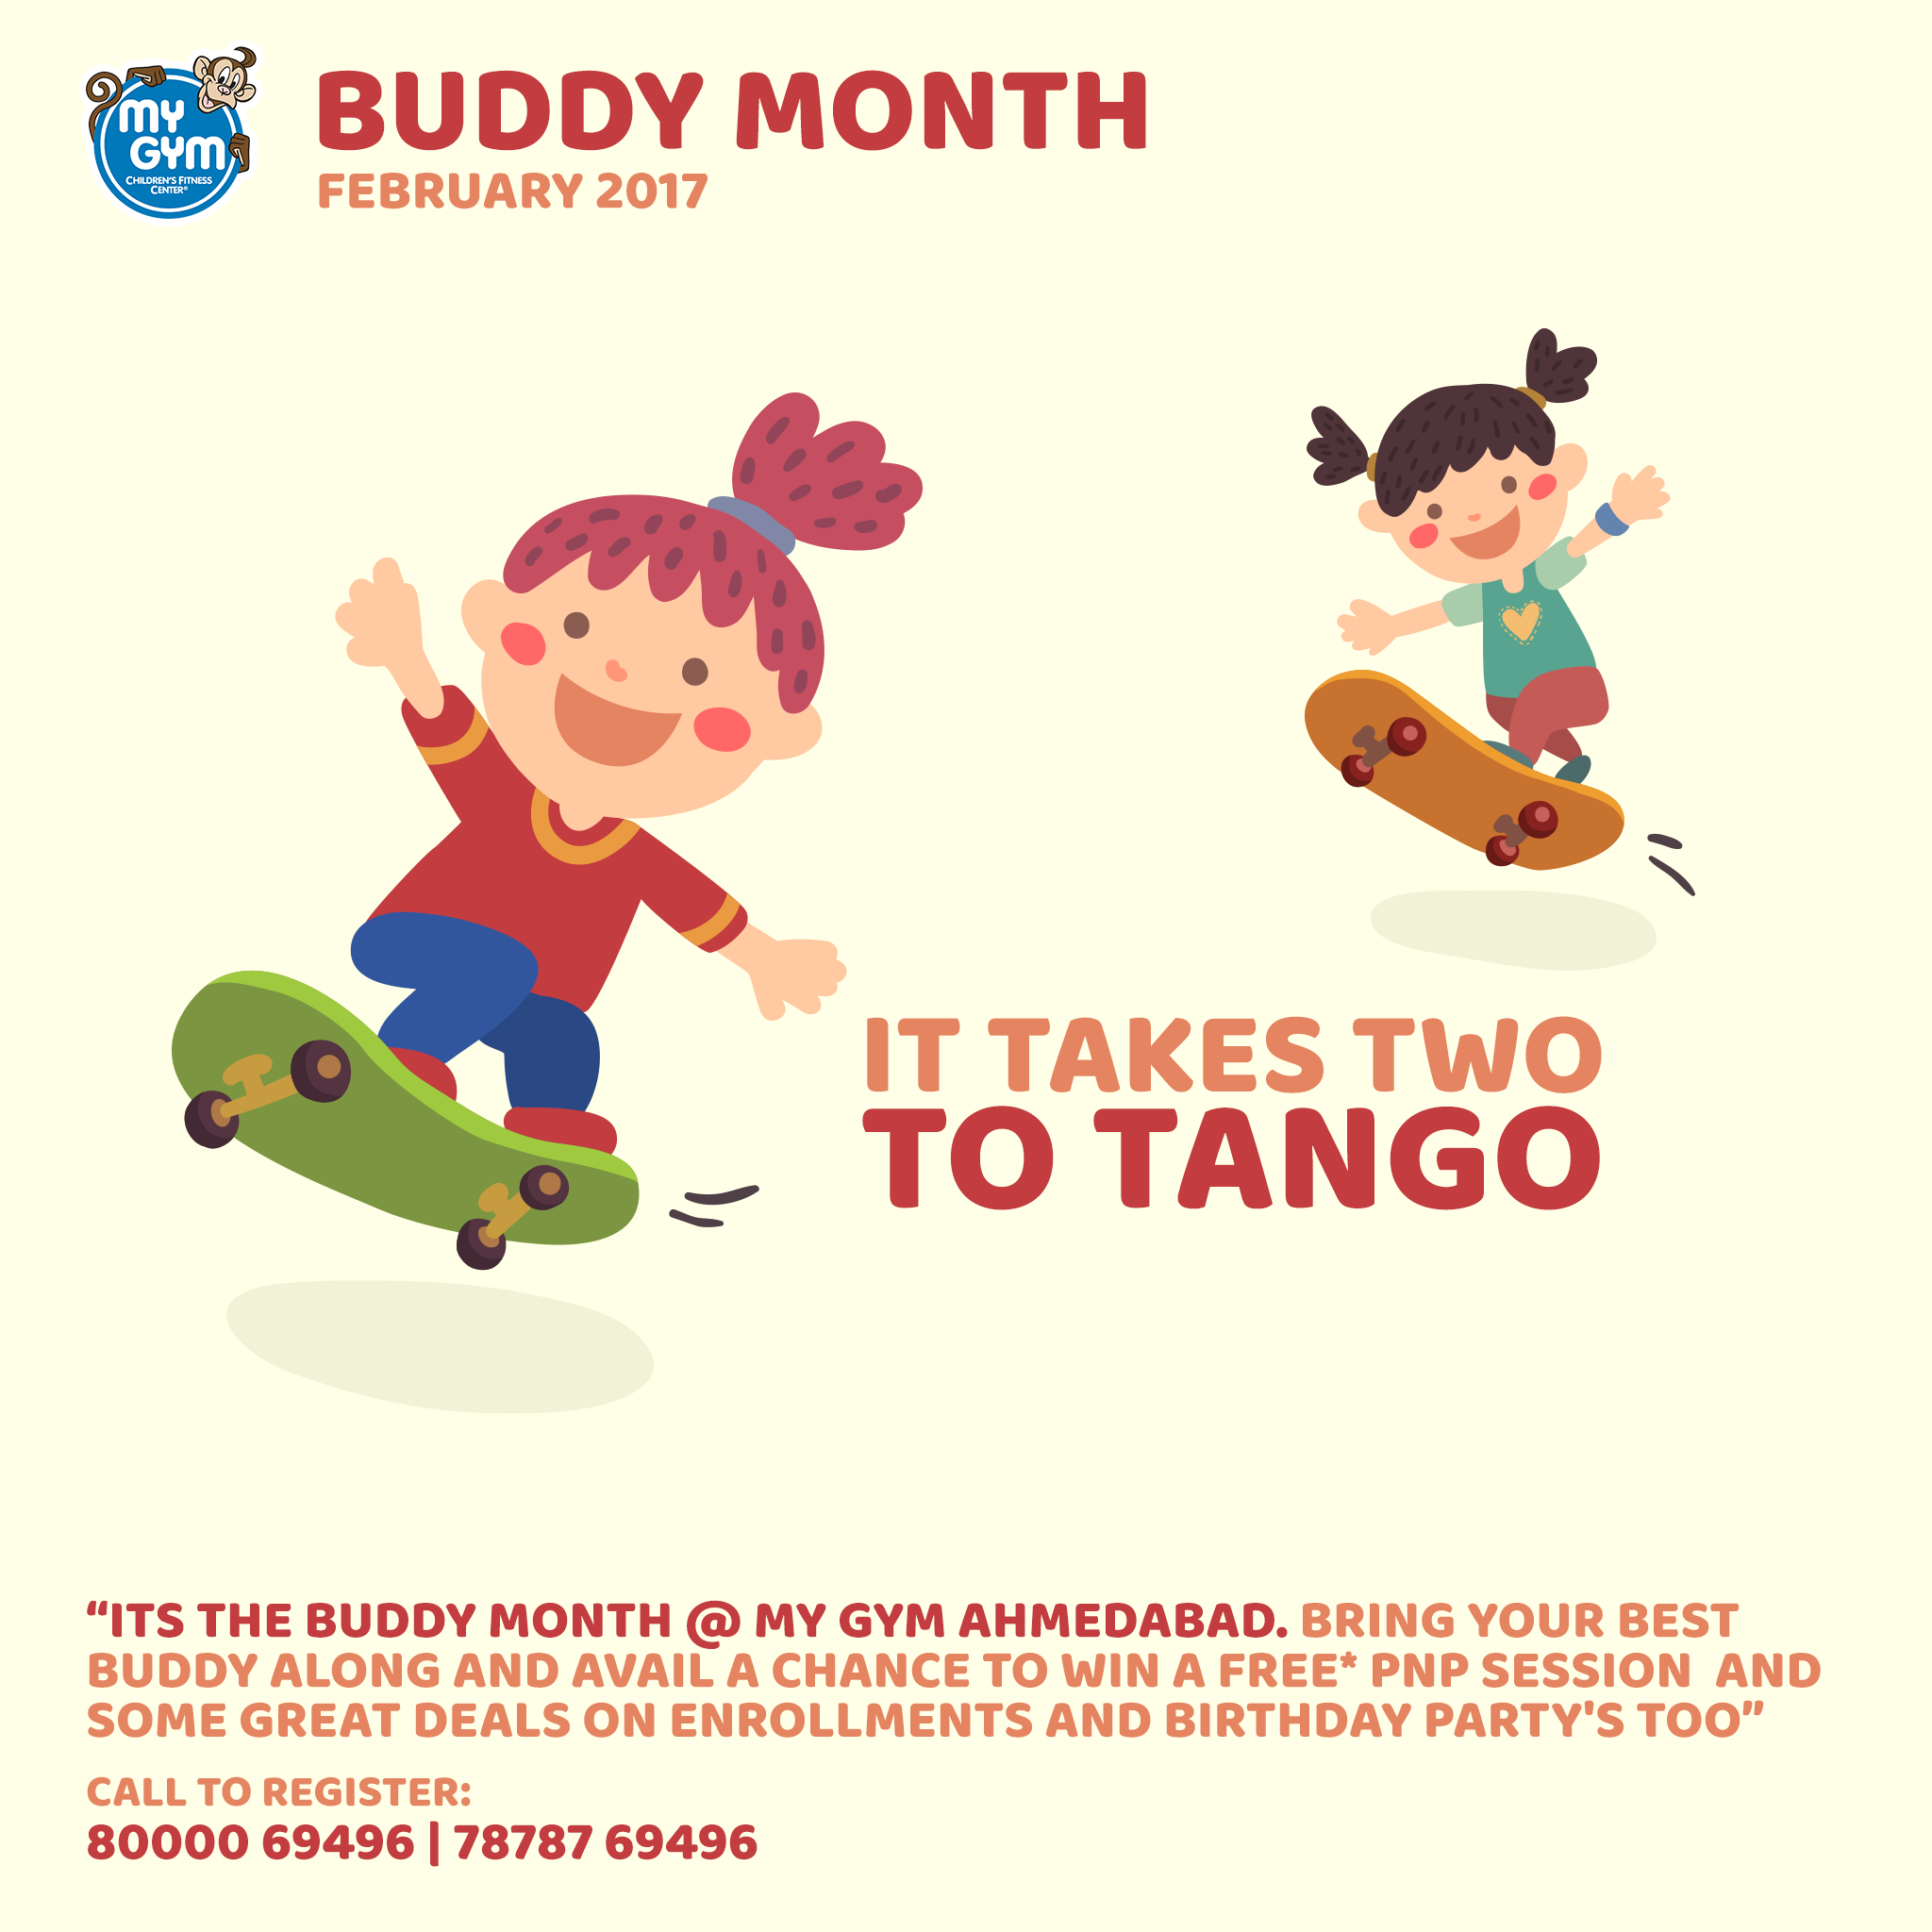 Last Few Days Left In Buddy Month To Get Great Deals On Enrollment And Birthday Parties MyGym MyGymFun BuddyMonth February Mymo Parents Celebrations